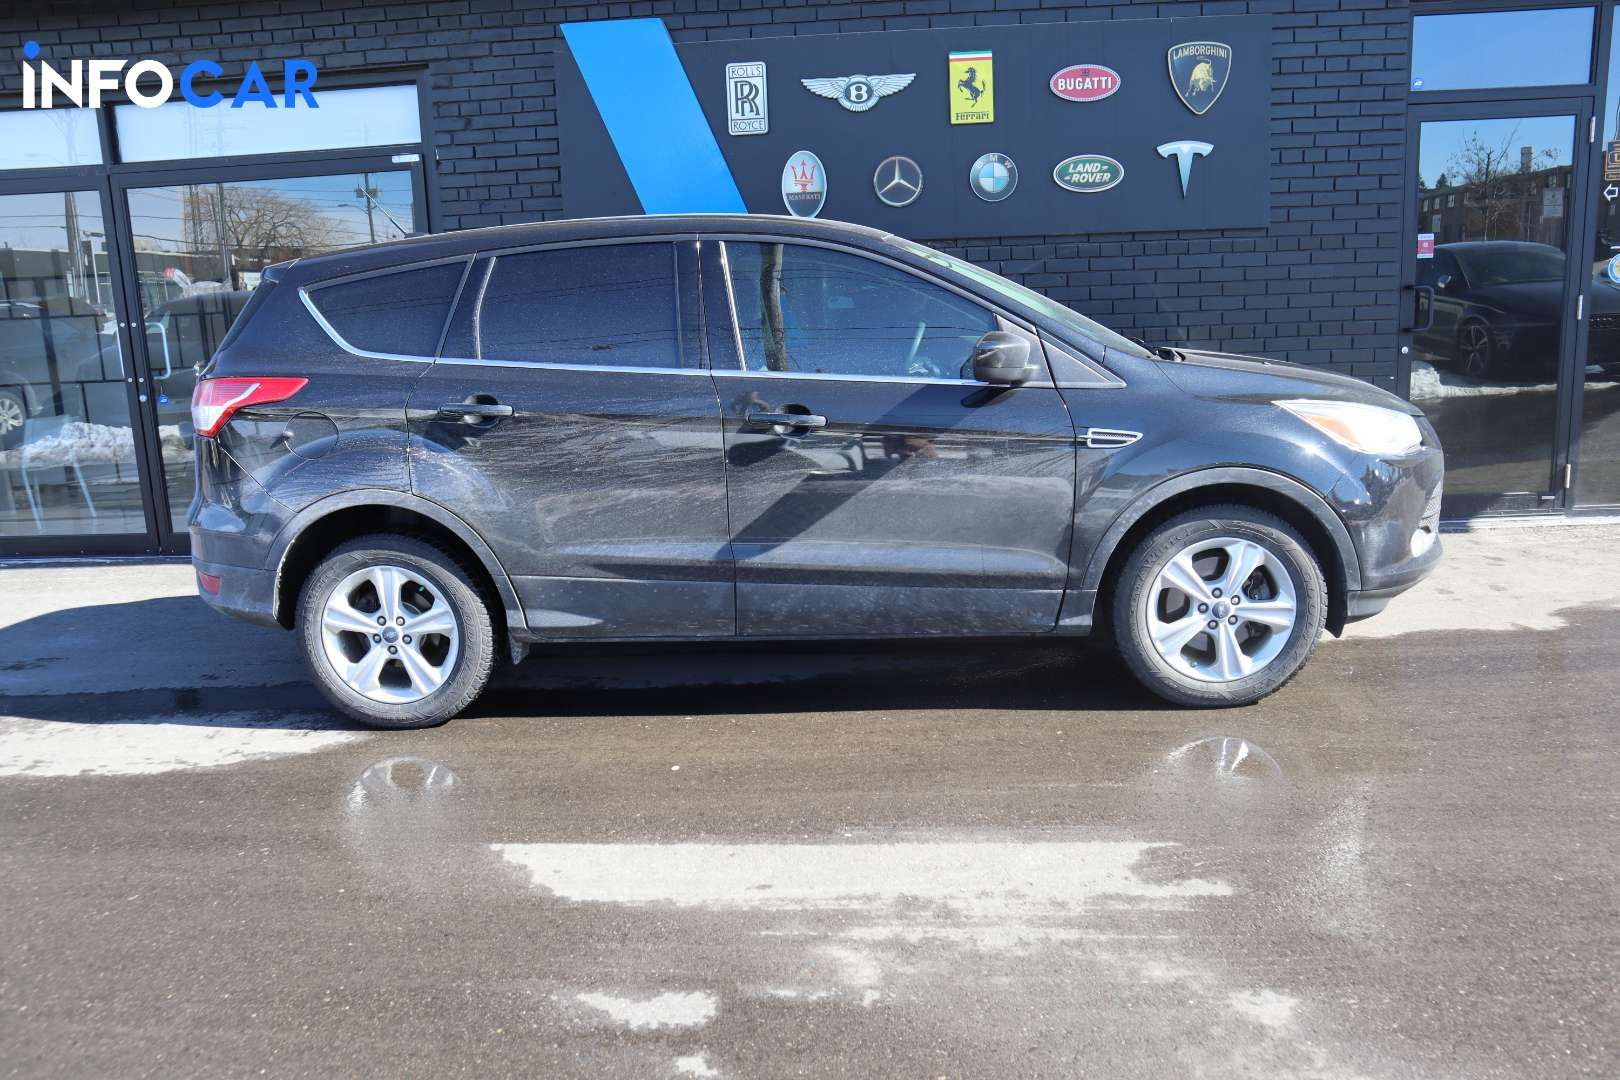 2013 Ford Escape null - INFOCAR - Toronto's Most Comprehensive New and Used Auto Trading Platform